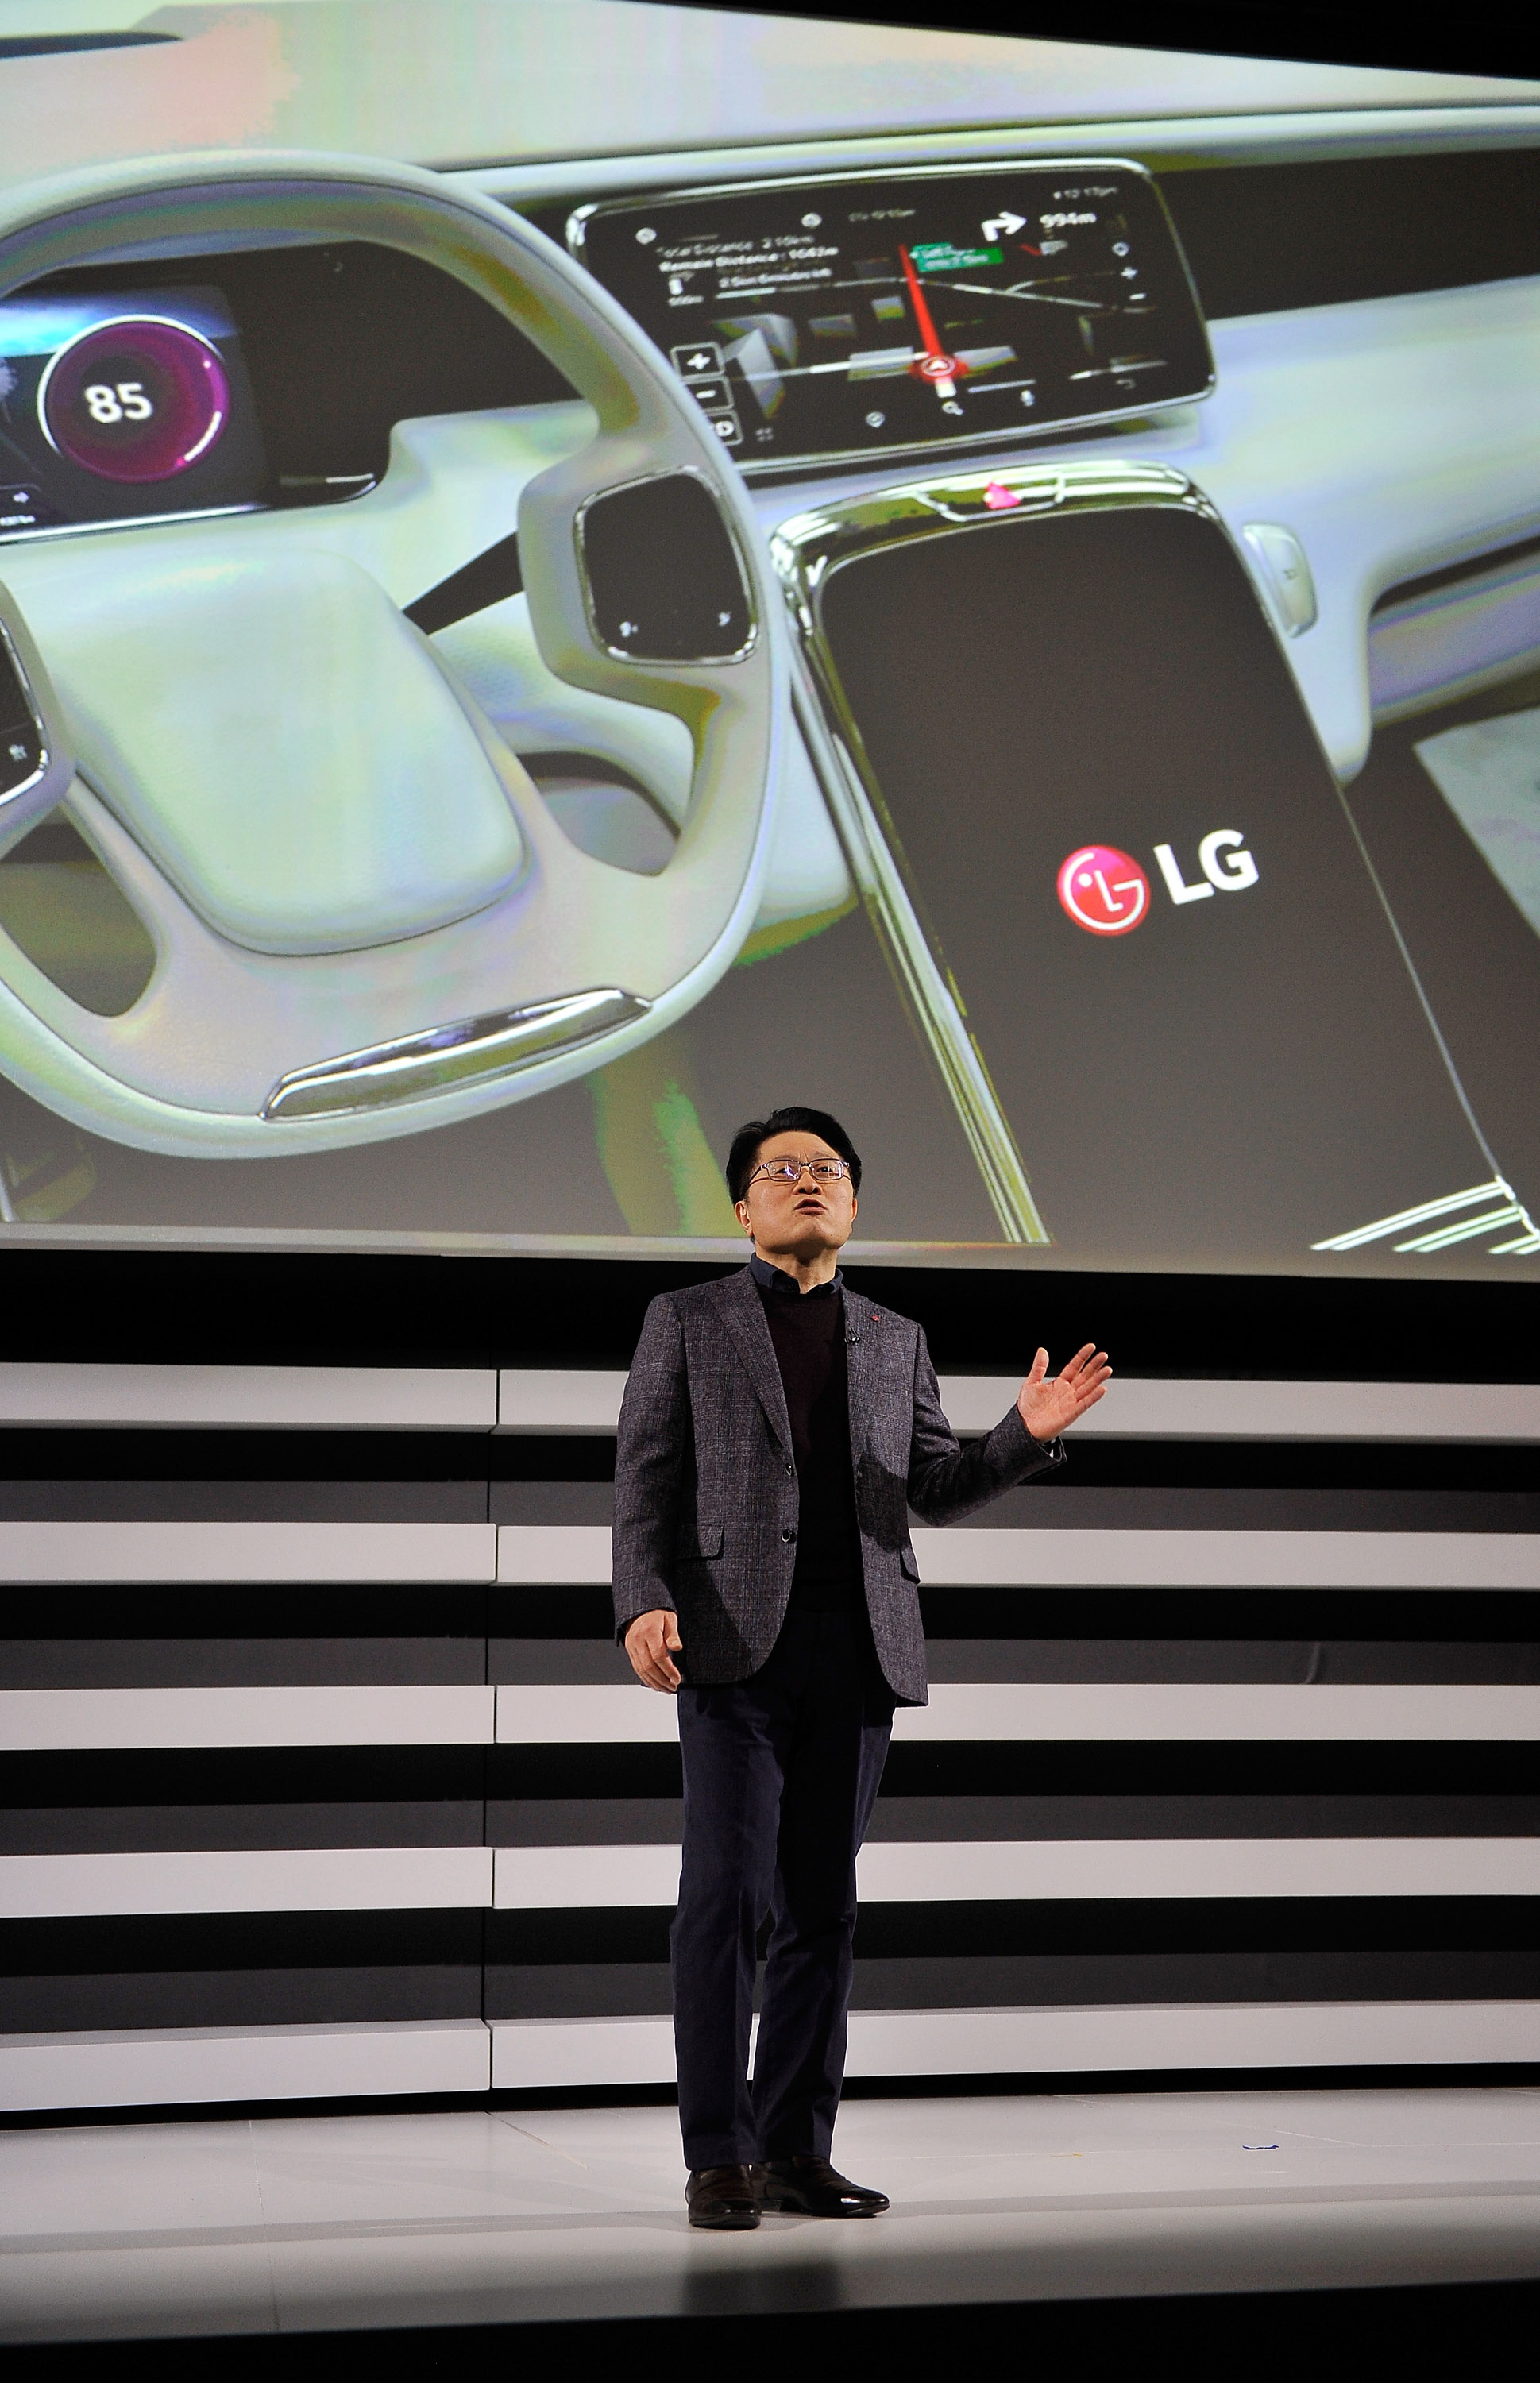 LG Electronics President and Chief Technology Officer Skott Ahn speaks at the 2015 International Consumer Electronics Show in Las Vegas on Jan. 5, 2015.